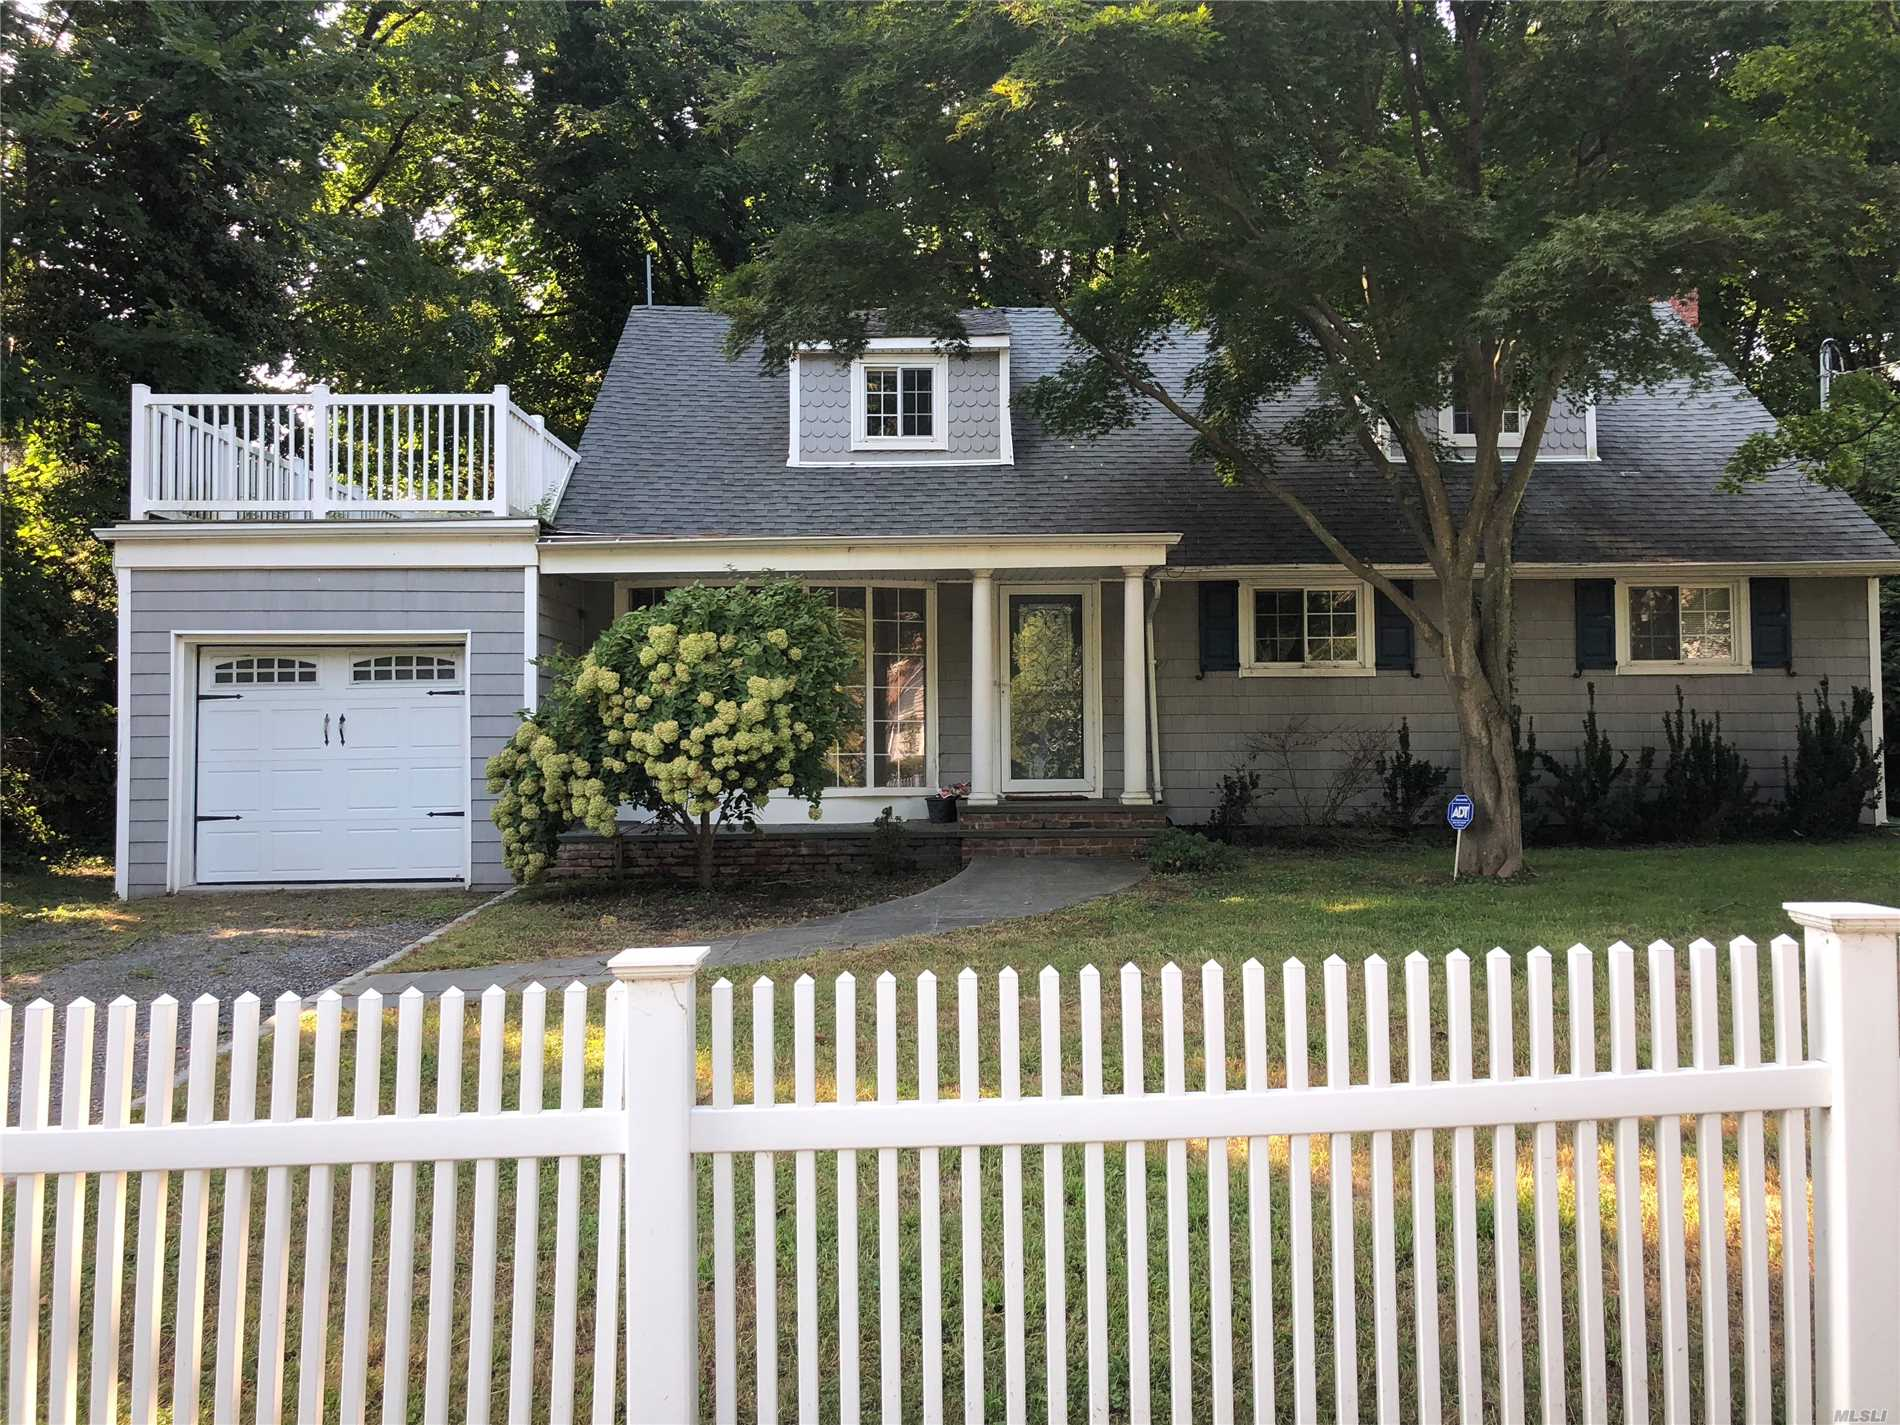 Beautifully Renovated Four Bedroom Two Full Baths. Hardwood Floors Throughout. Open Floor Plan Great For Entertaining. Crown Moldings. Walking Distance To Beach And Village Of Seacliff.